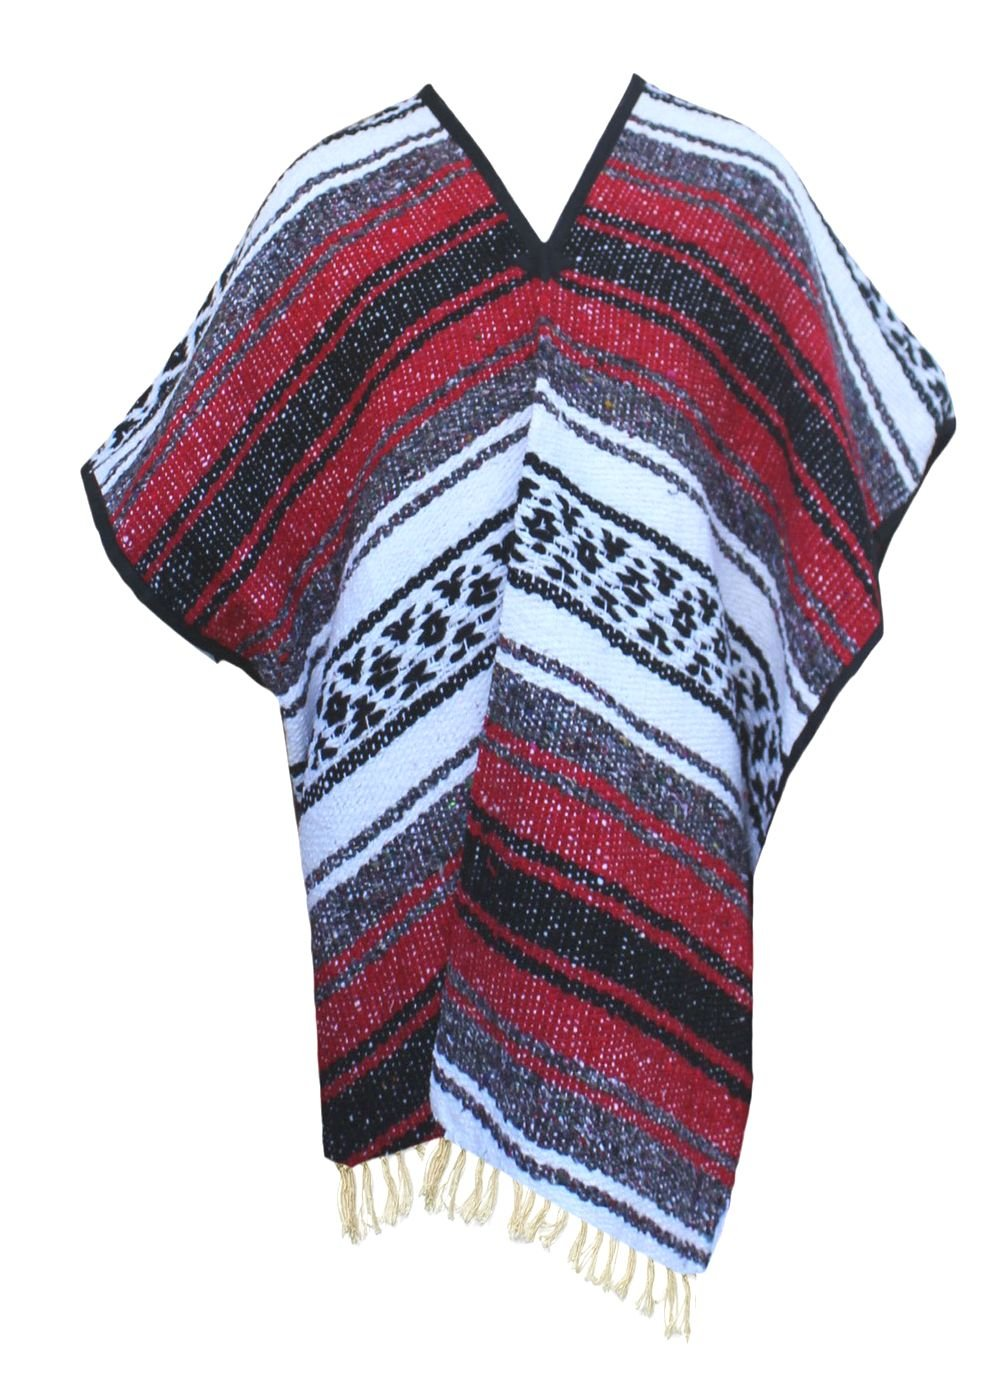 Del Mex Youth Child Classic Mexican Blanket Poncho Pancho Costume (Red)